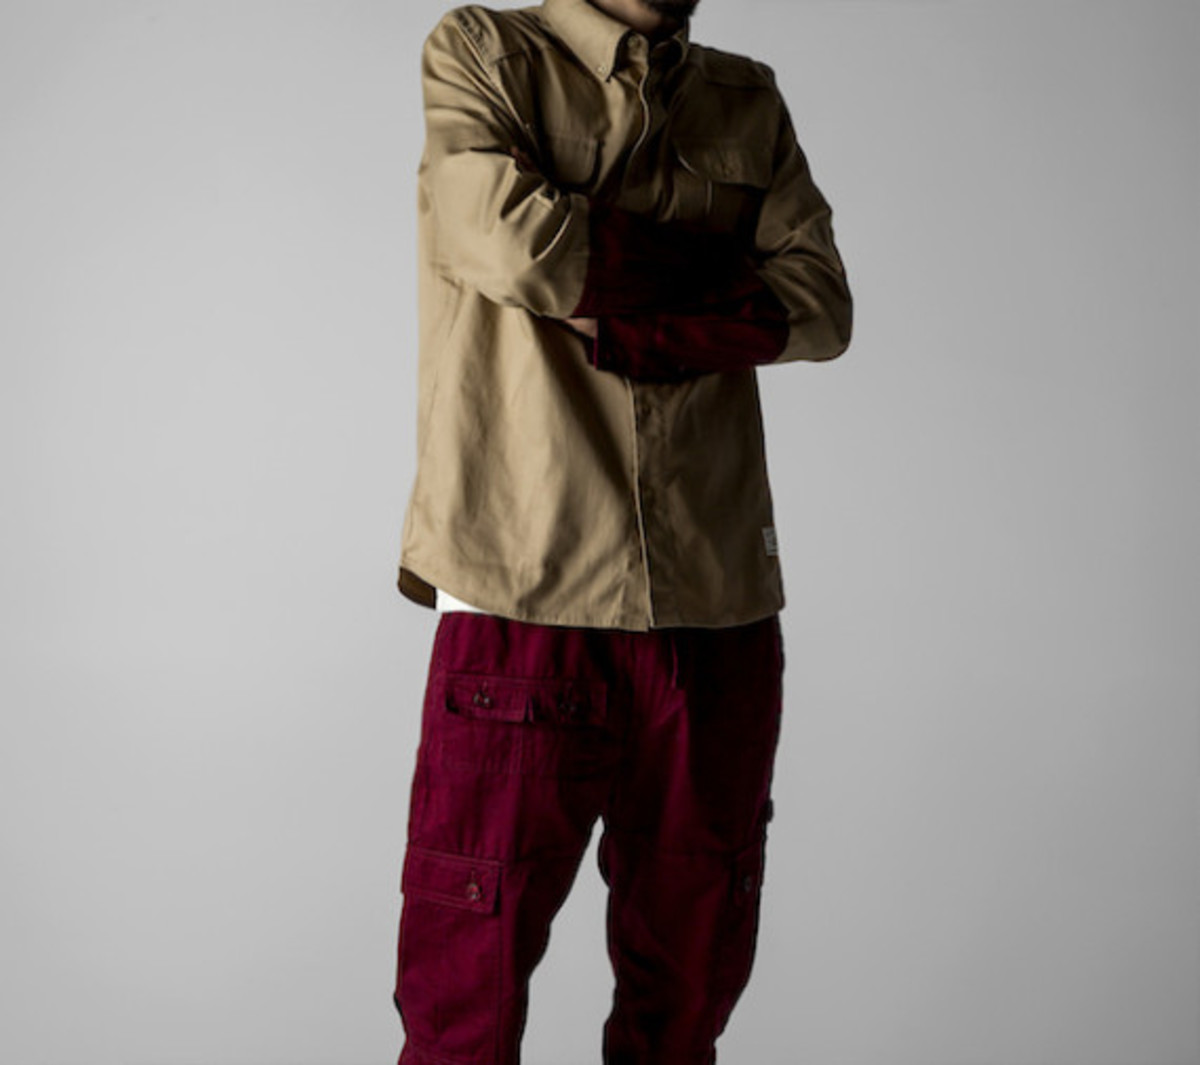 Play Cloths - Holiday 2013 Collection Lookbook - Delivery 1 - 3